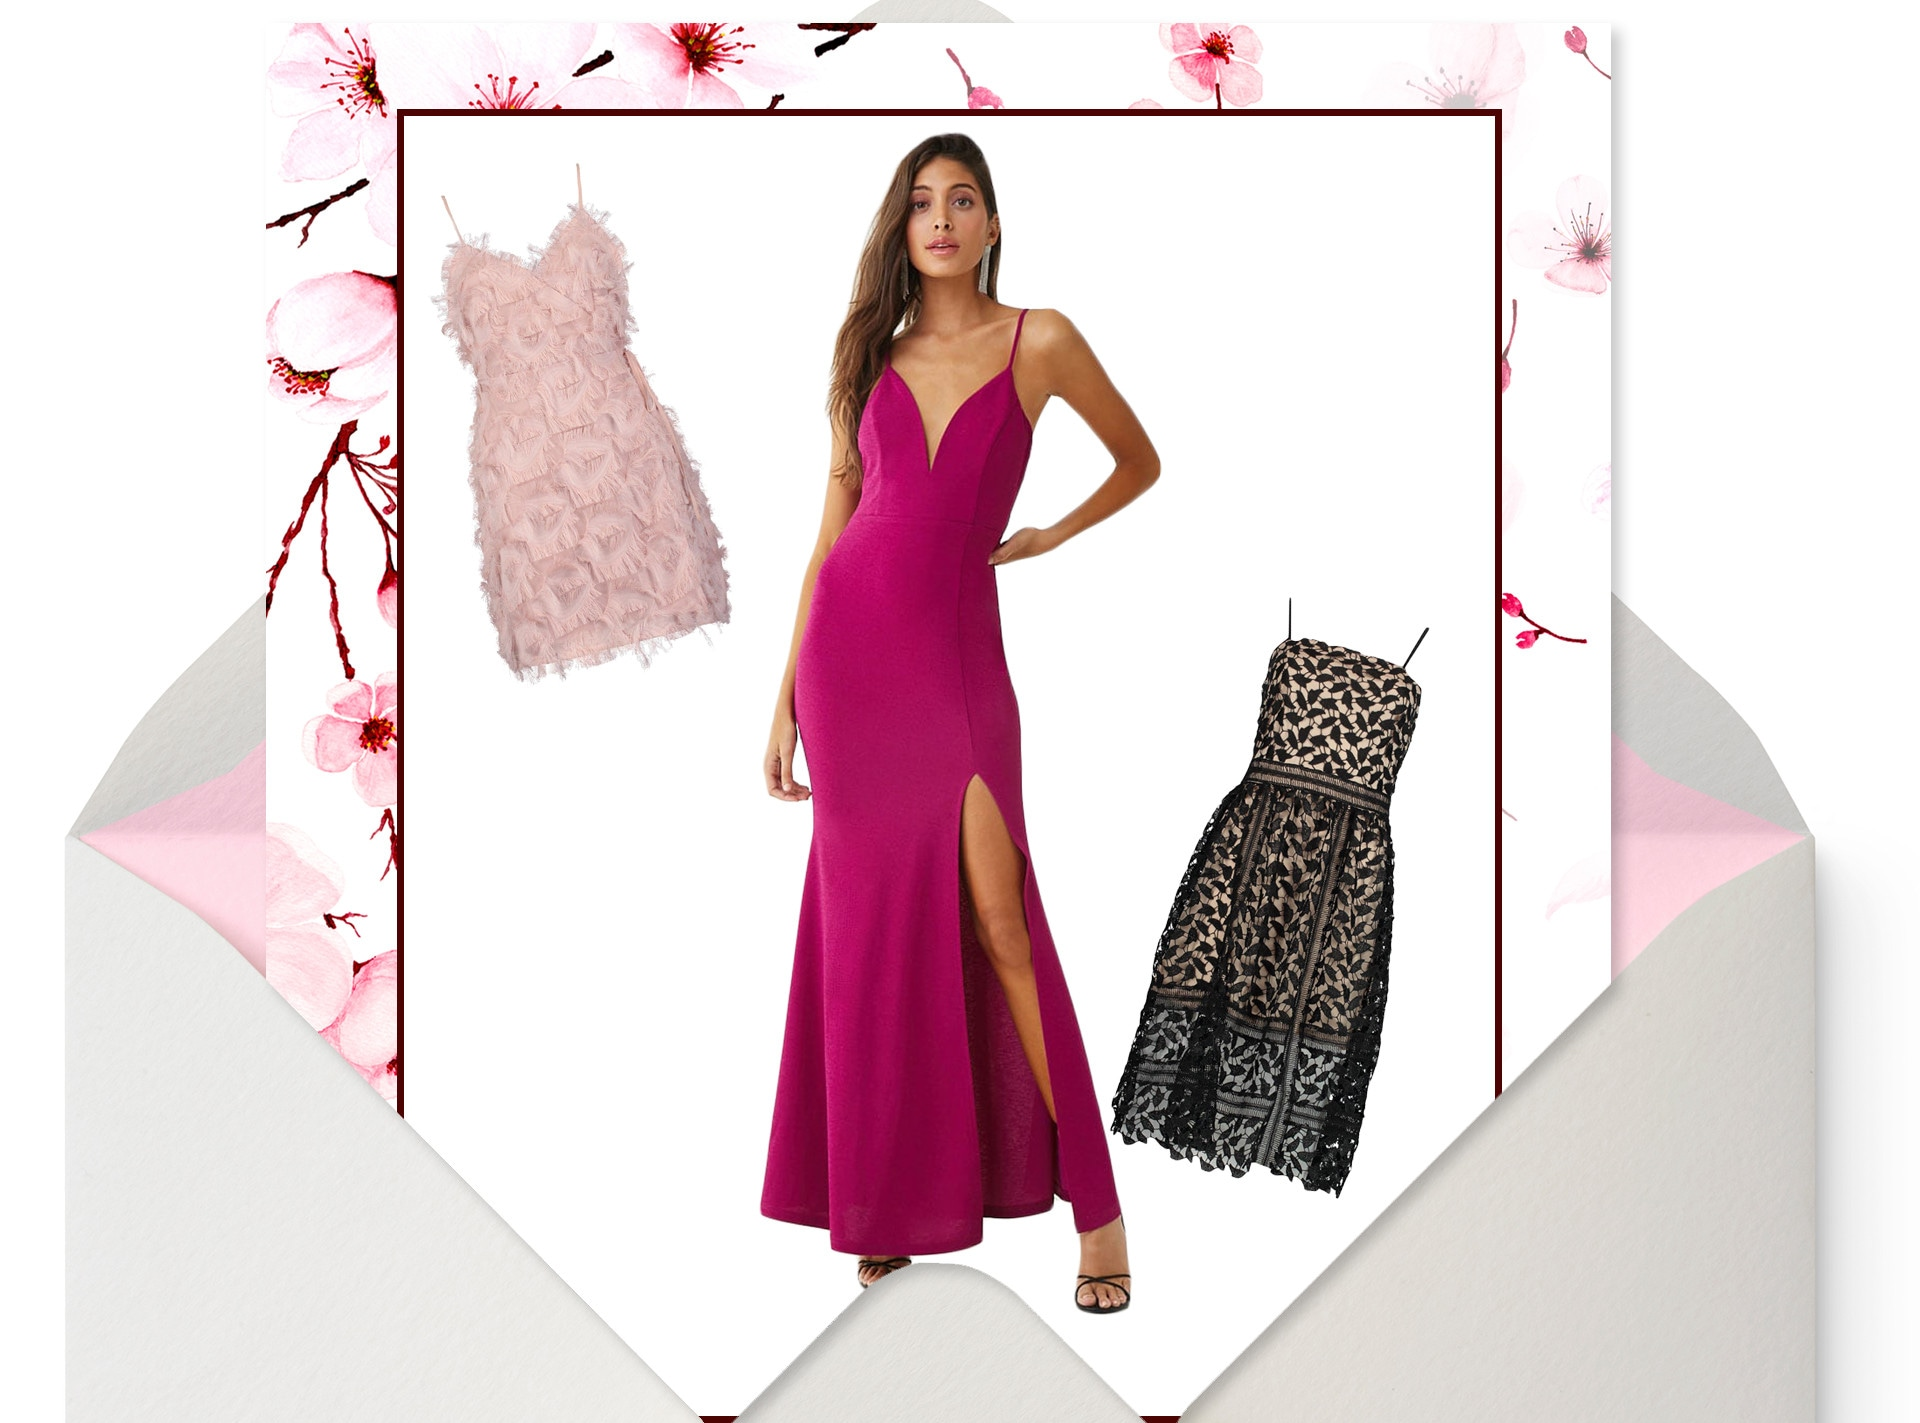 Wedding Guest Dresses Under 50 E Online Wedding guest dresses appropriate for any ceremony. wedding guest dresses under 50 e online